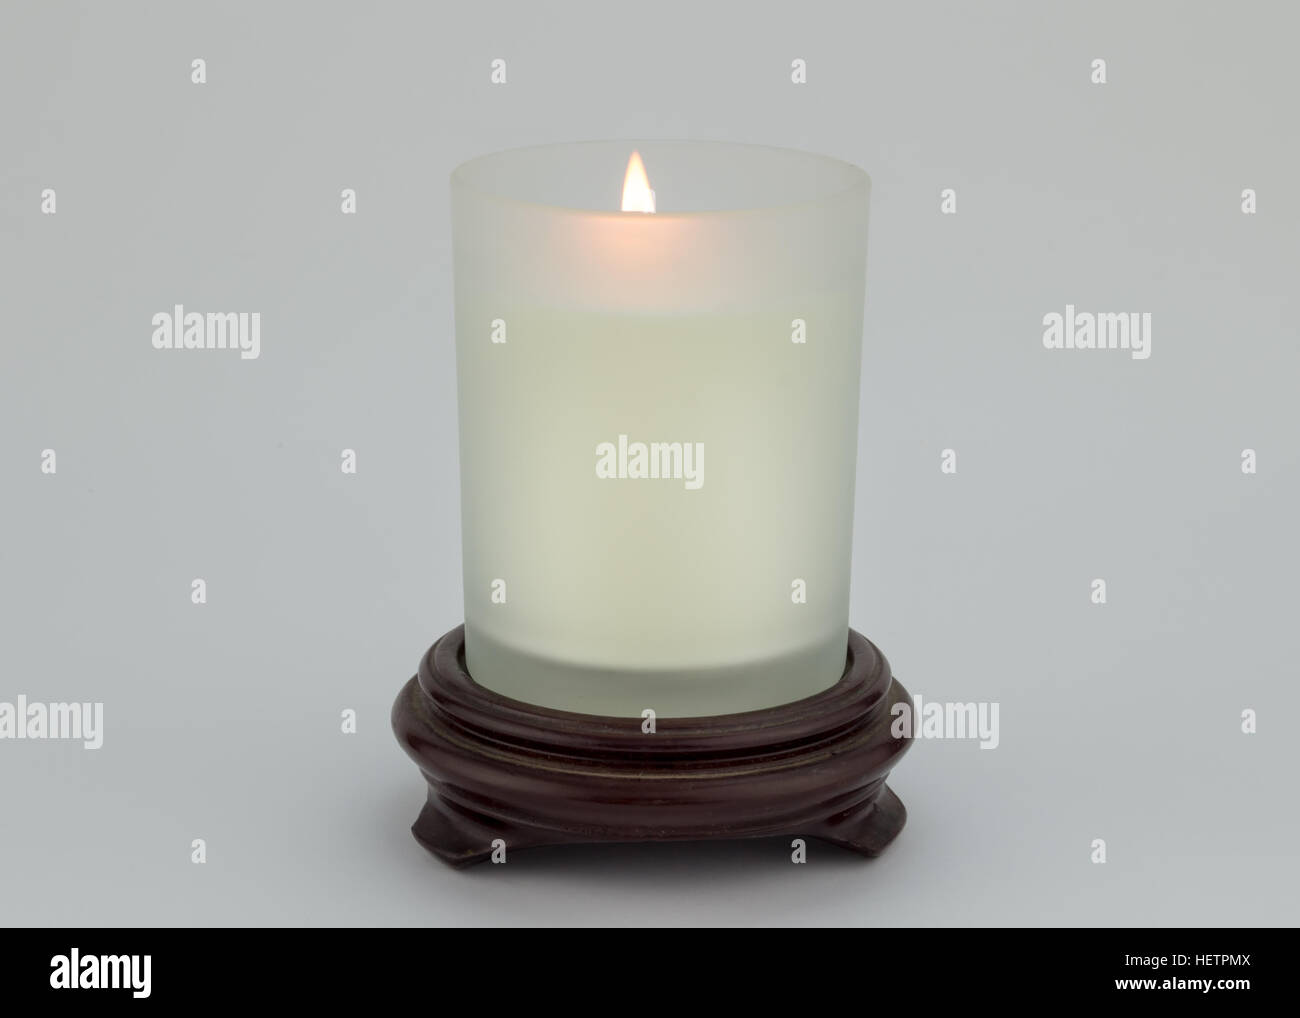 Single lit candle in glass on wood stand isolated on white